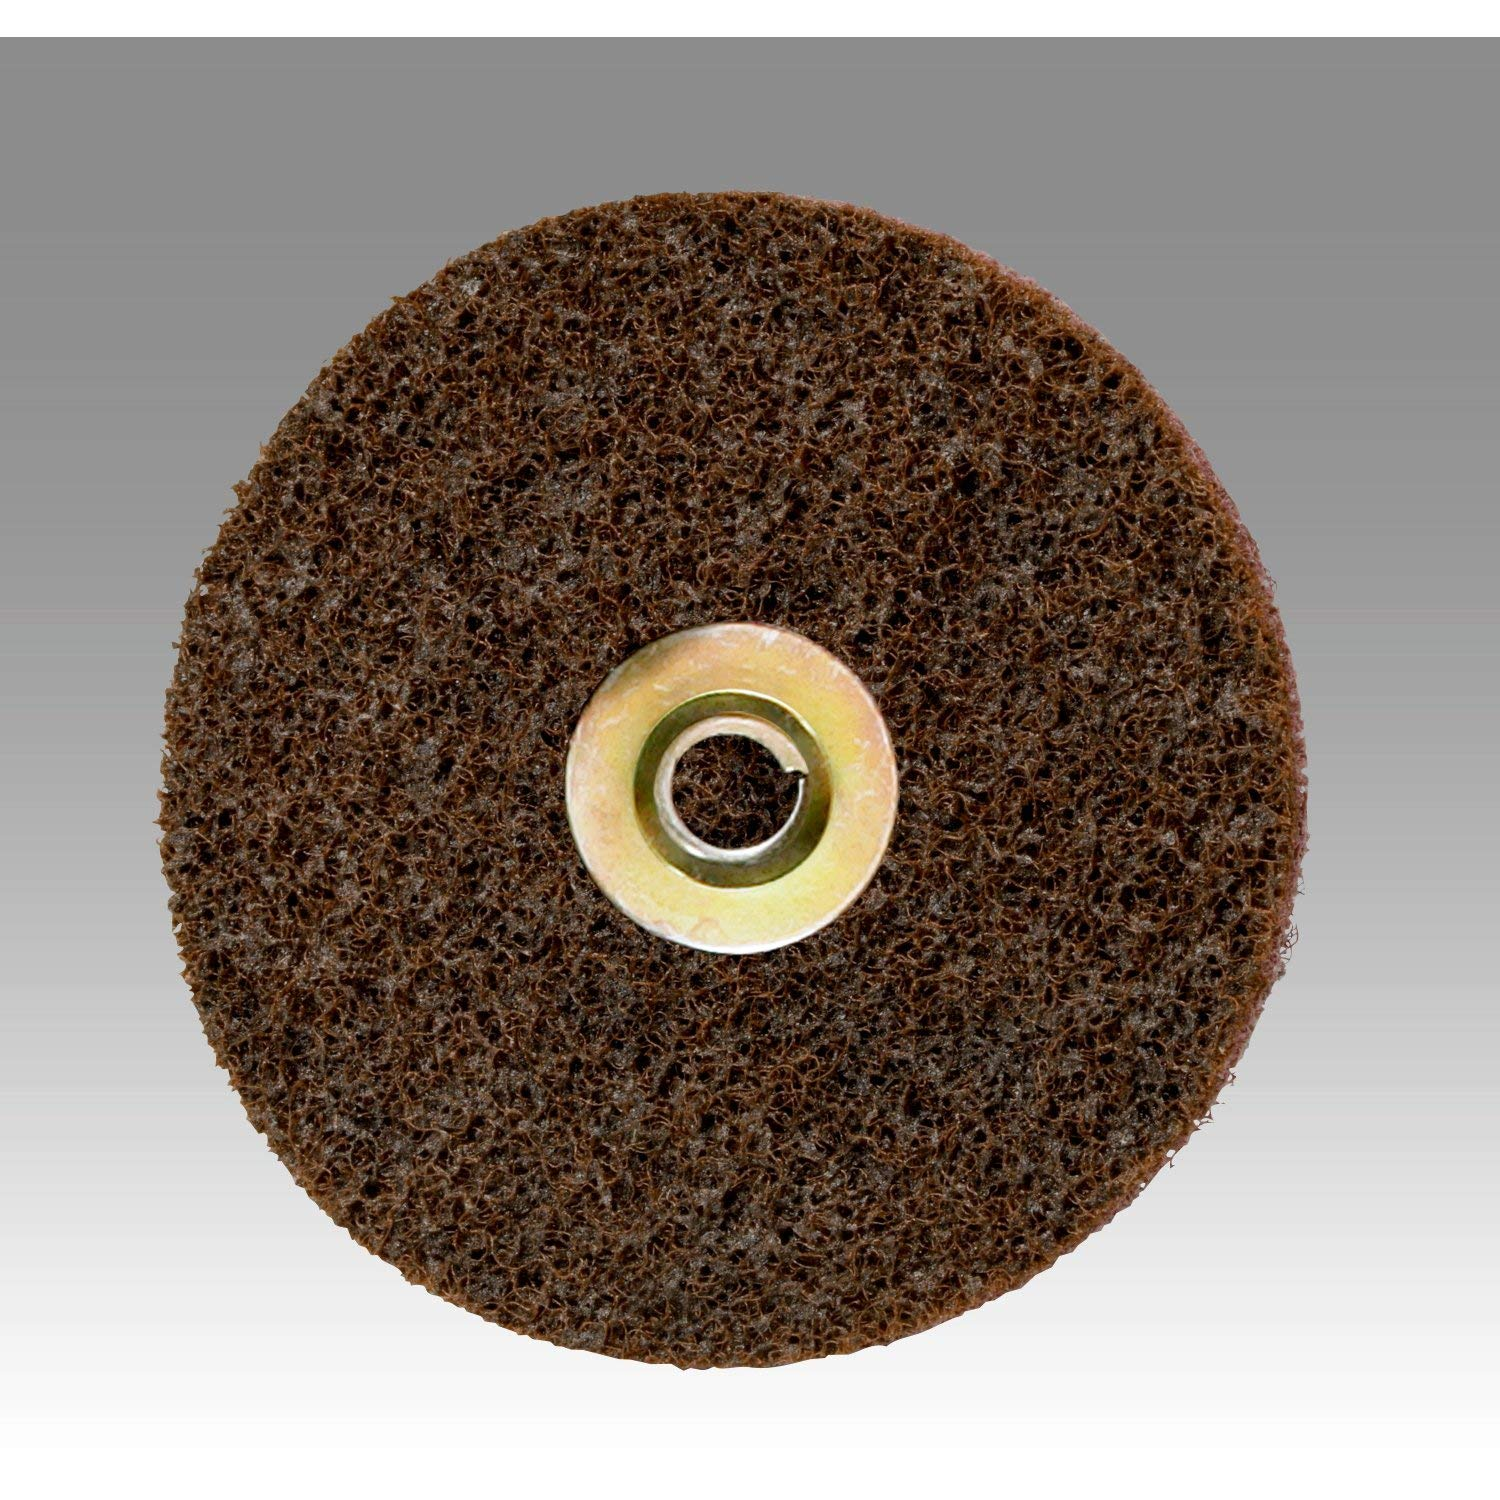 Cubitron II Scotch-Brite Surface Conditioning Disc for Sanding – Metal Surface Prep – Hook and Loop – Aluminum Oxide – Very Fine Grit – 7 diam. – Pack of 10, Model:SC-DH 81pTkjpw0CL